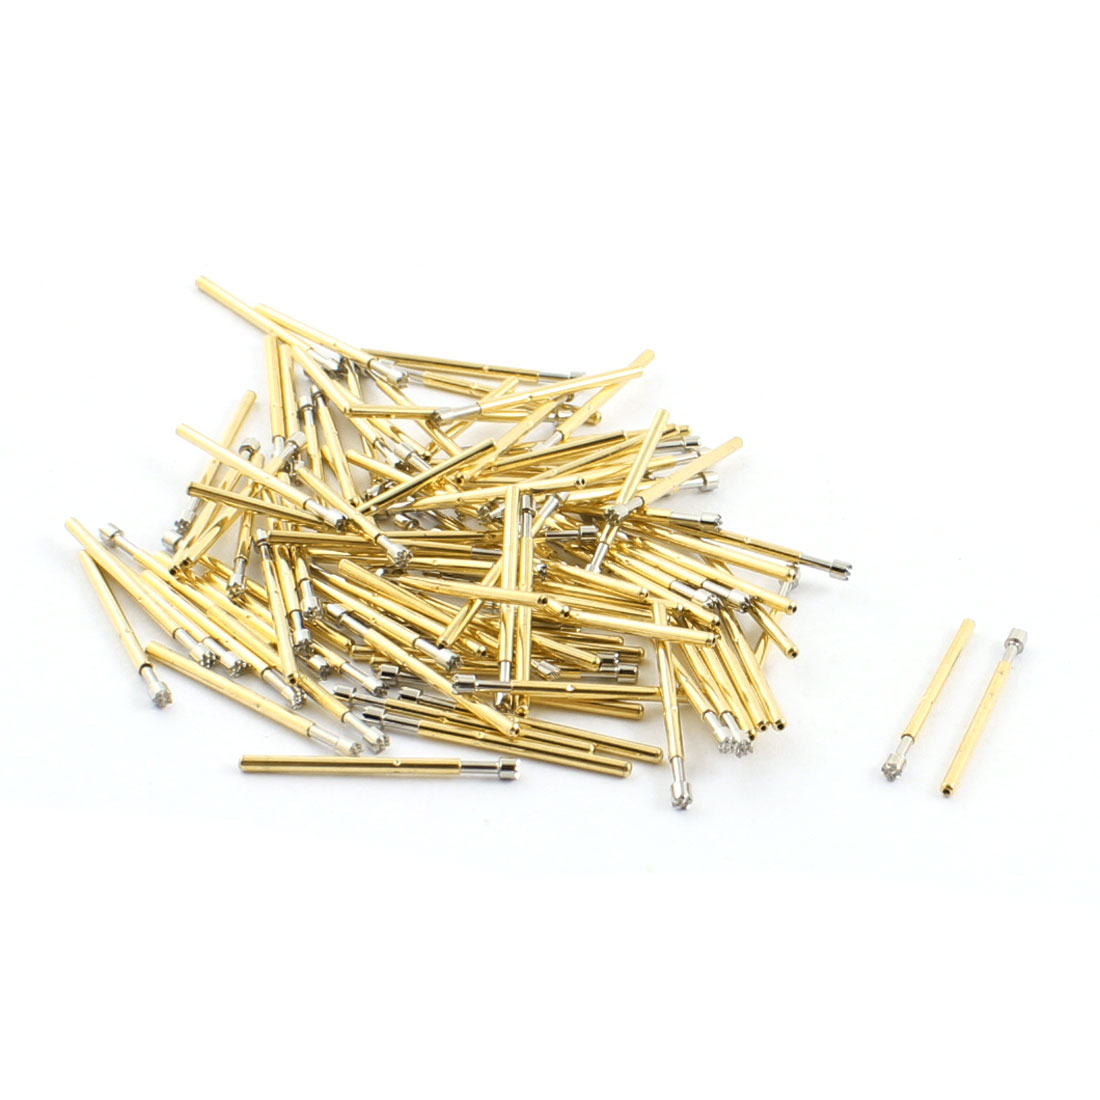 100pcs P160-H3 1.8mm Dia 9-Pointed Plum Tip 23.5mm Length Metal Spring Test Probes Testing Pins for PCB Board